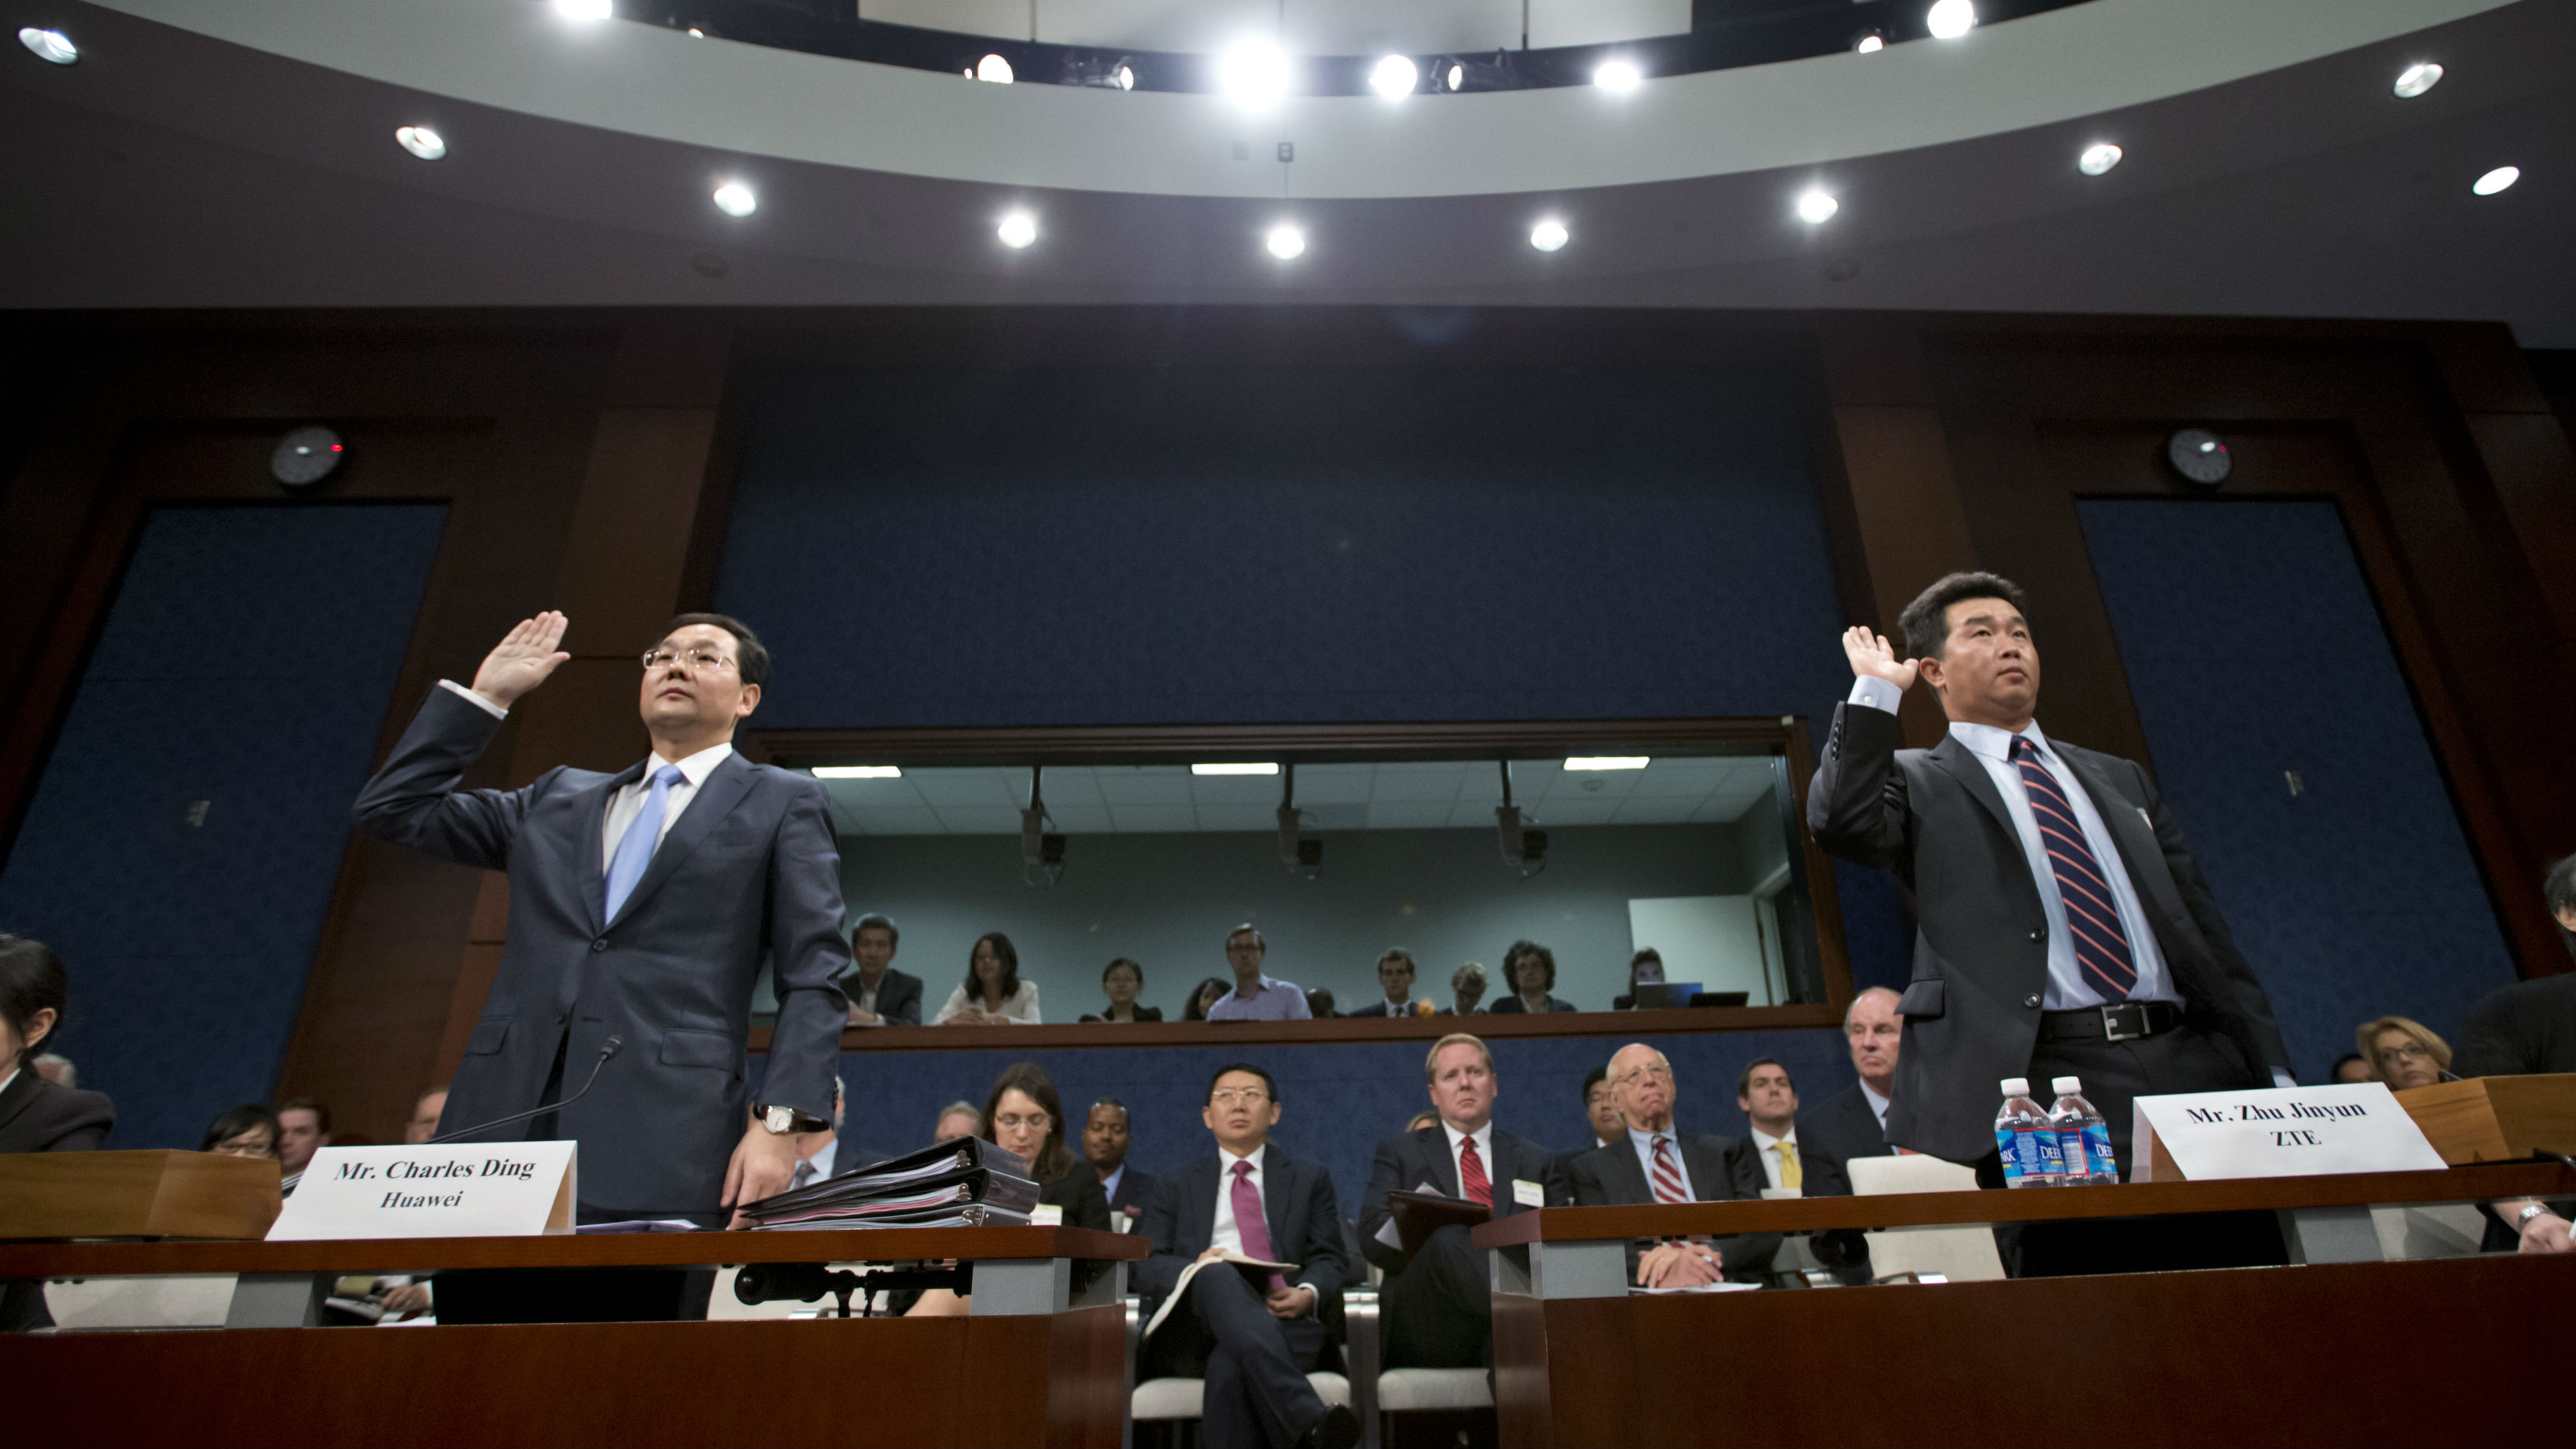 Charles Ding, Huawei Technologies Ltd senior vice president for the US, left, and Zhu Jinyun, ZTE Corporation senior vice president for North America and Europe before the House Intelligence Committee on Sept. 13, 2012